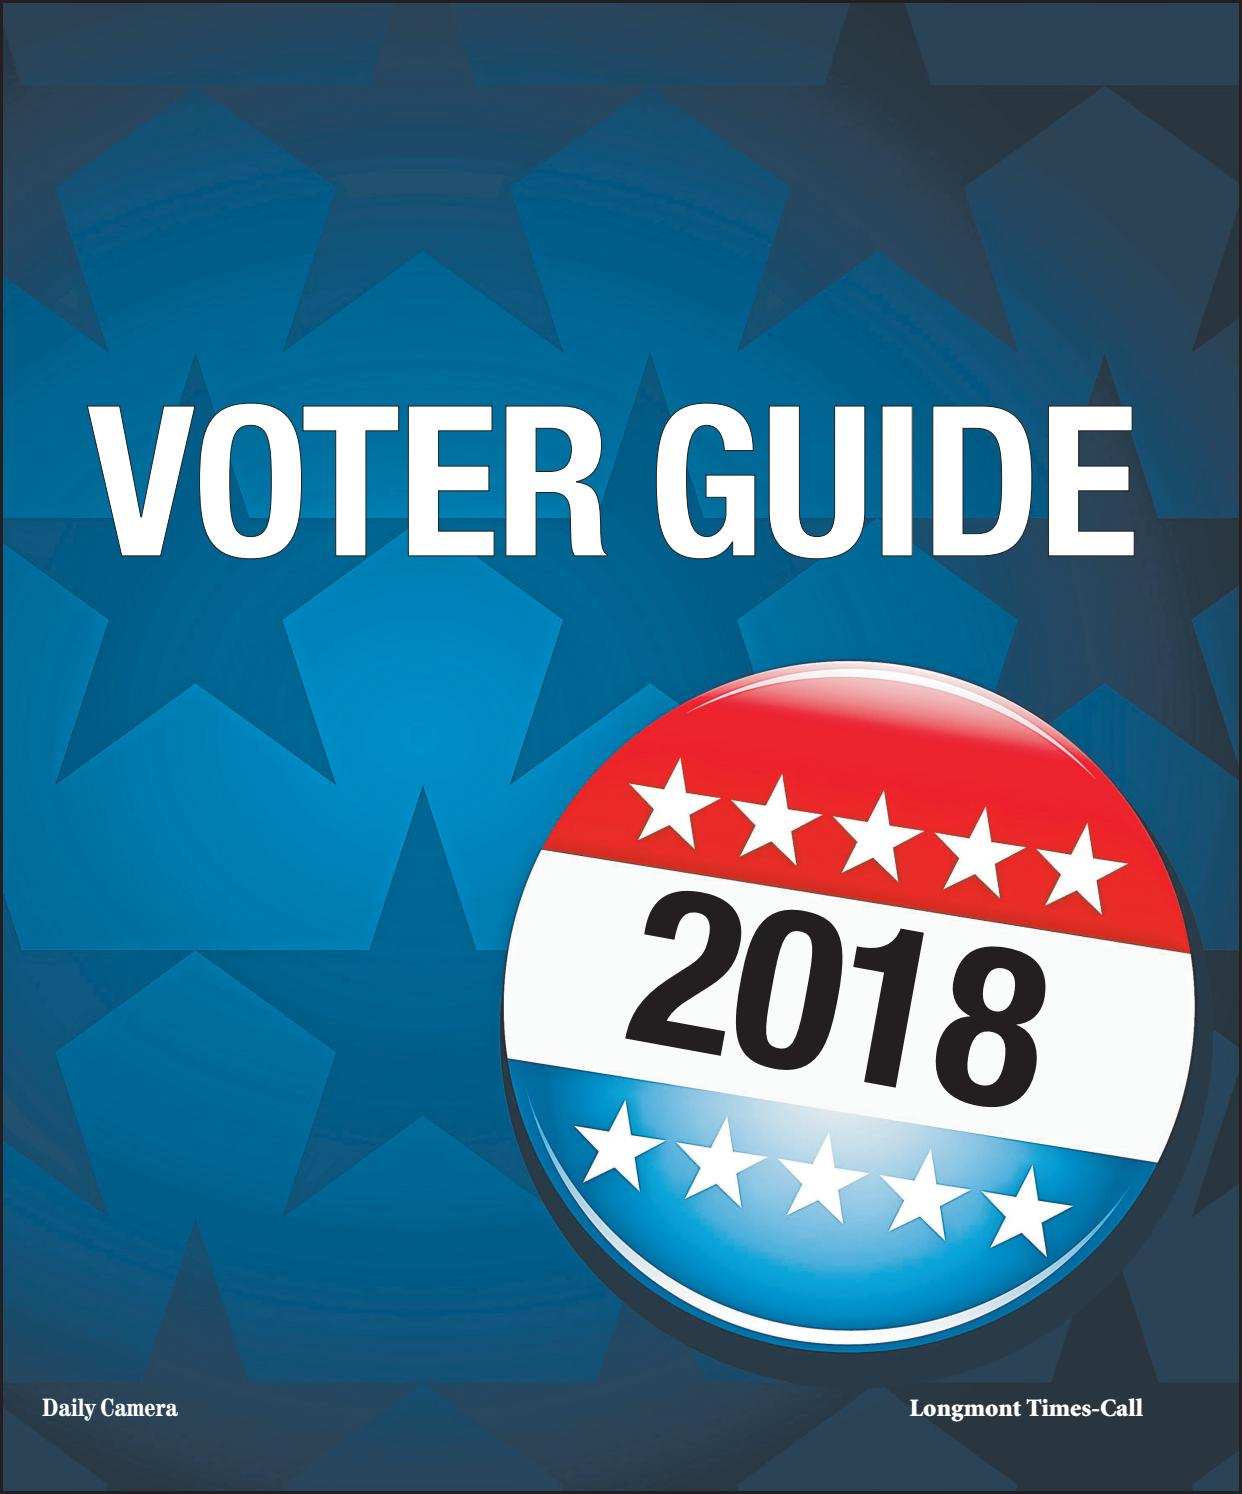 Daily Camera Voter Guide, October 14, 2018 by Prairie